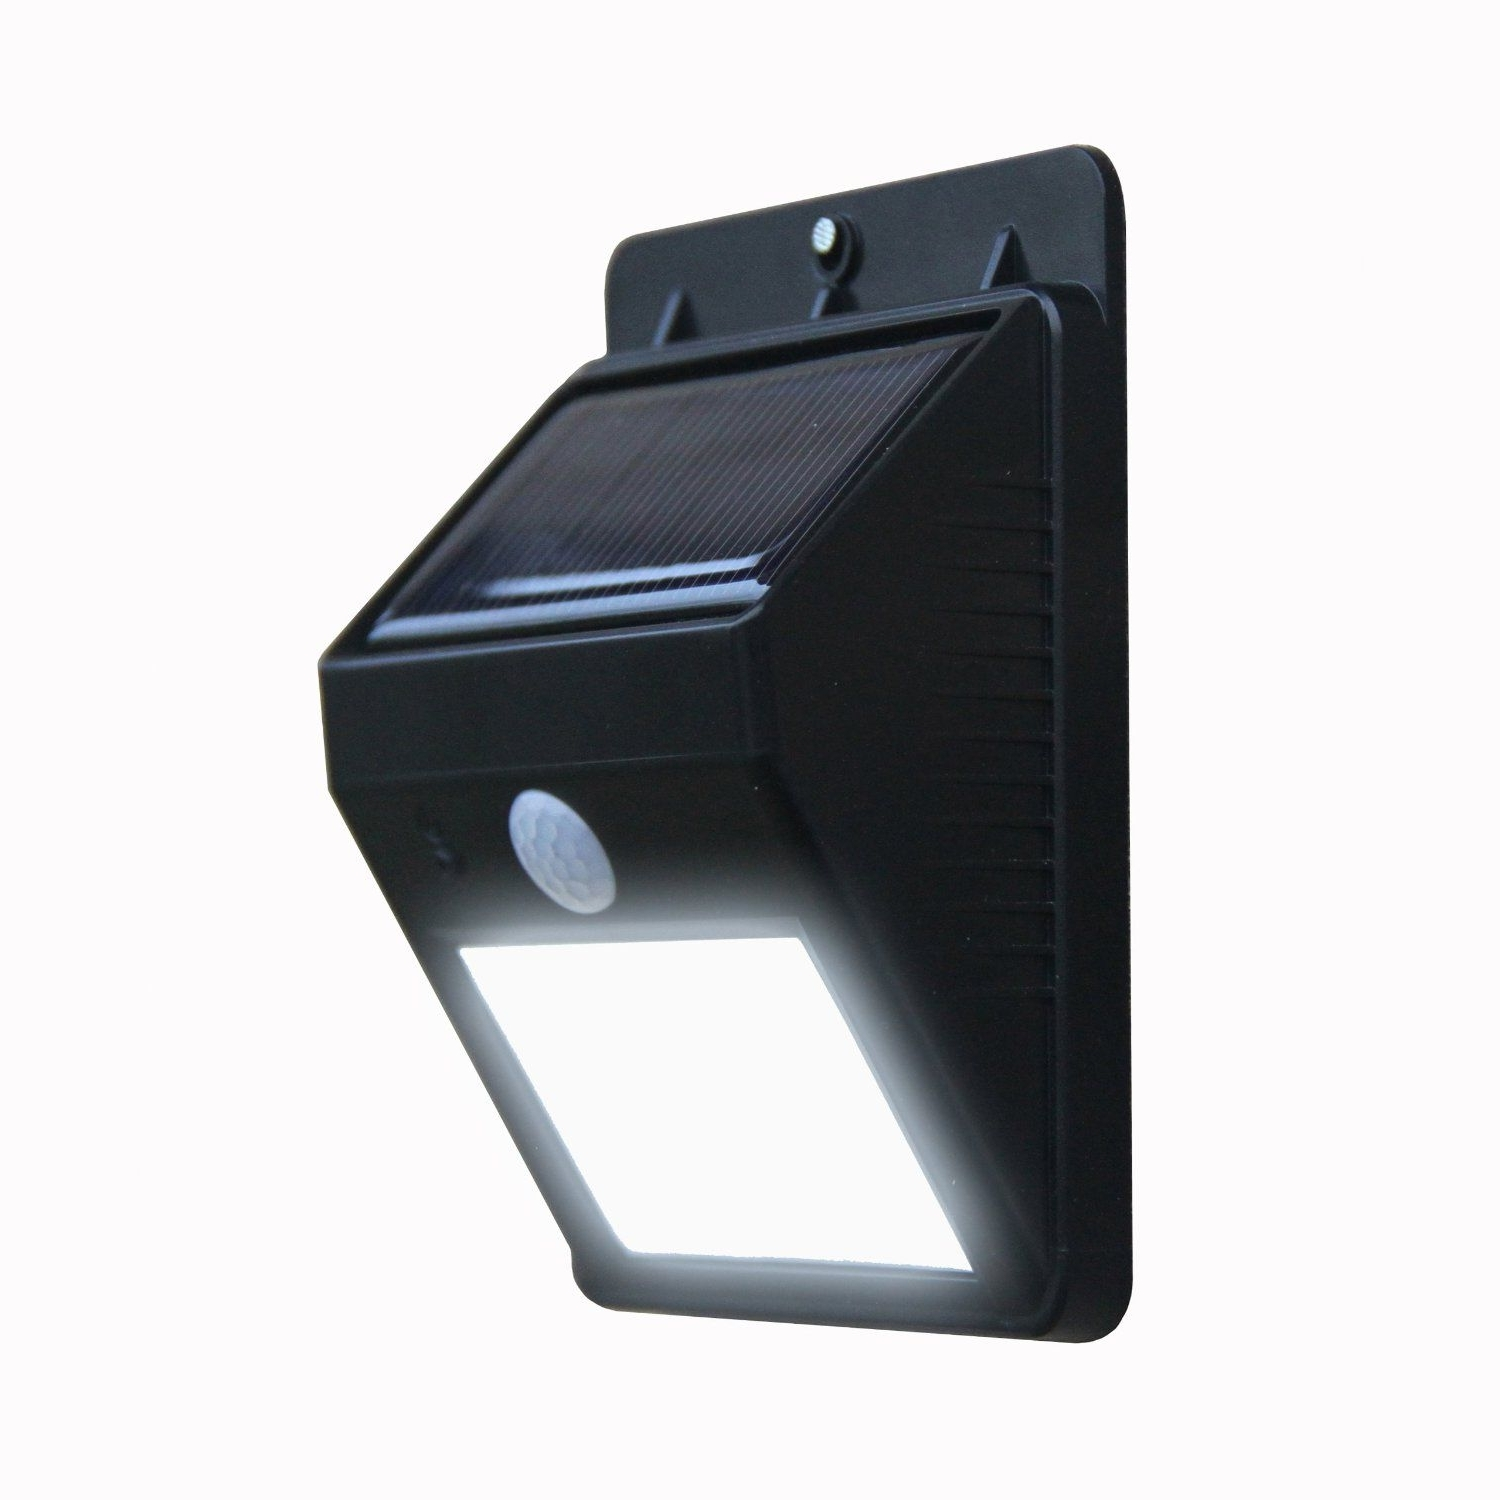 Modern Outdoor Wall Light Fixtures With Motion Sensor For Industrial Intended For Fashionable Battery Operated Outdoor Wall Lights (View 15 of 20)